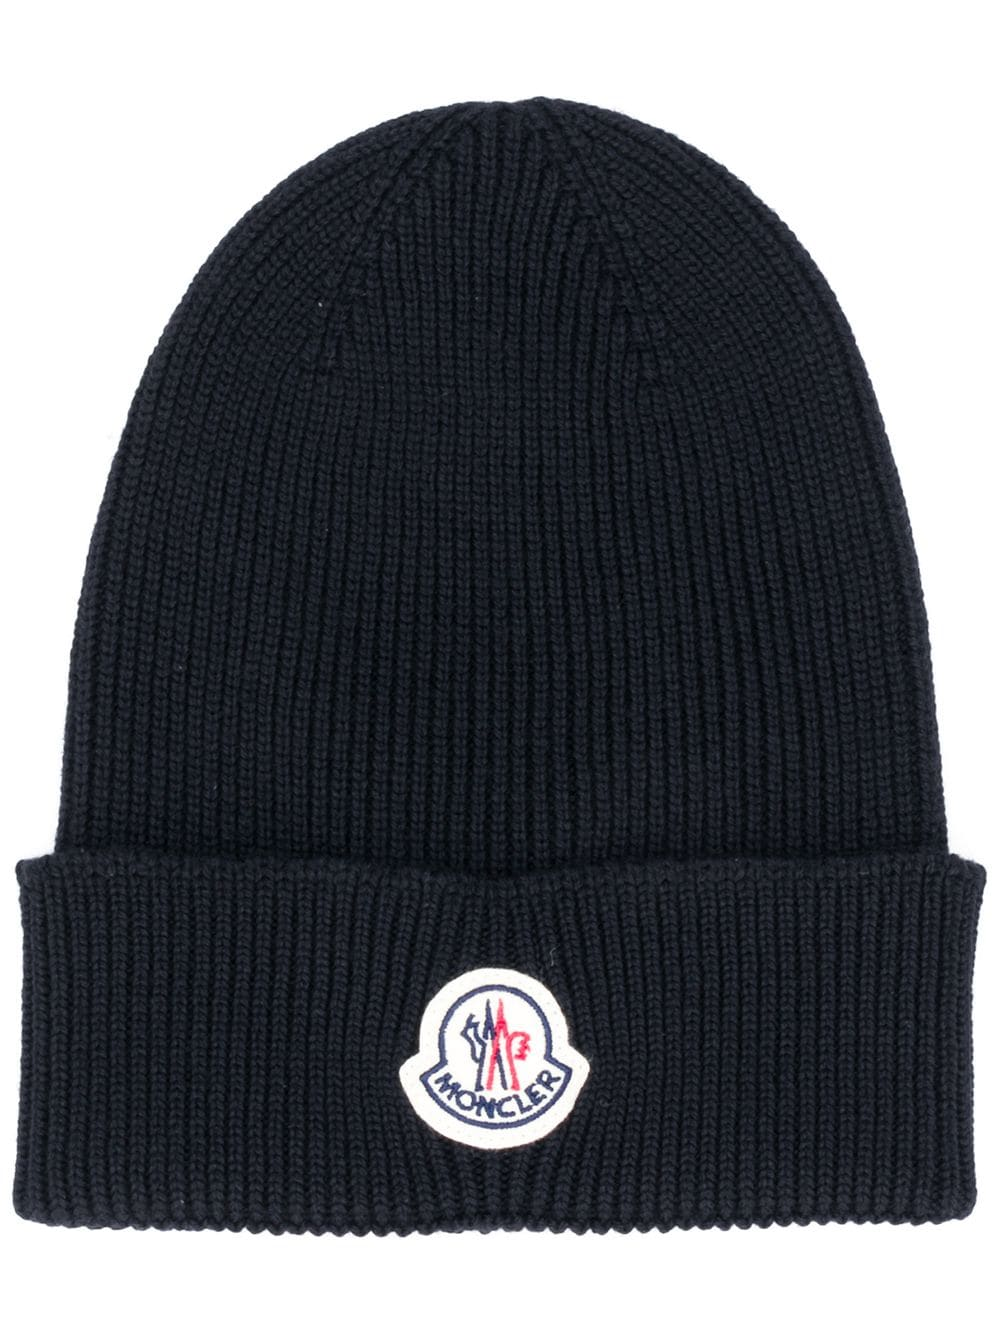 MONCLER Logo Patch Beanie Black